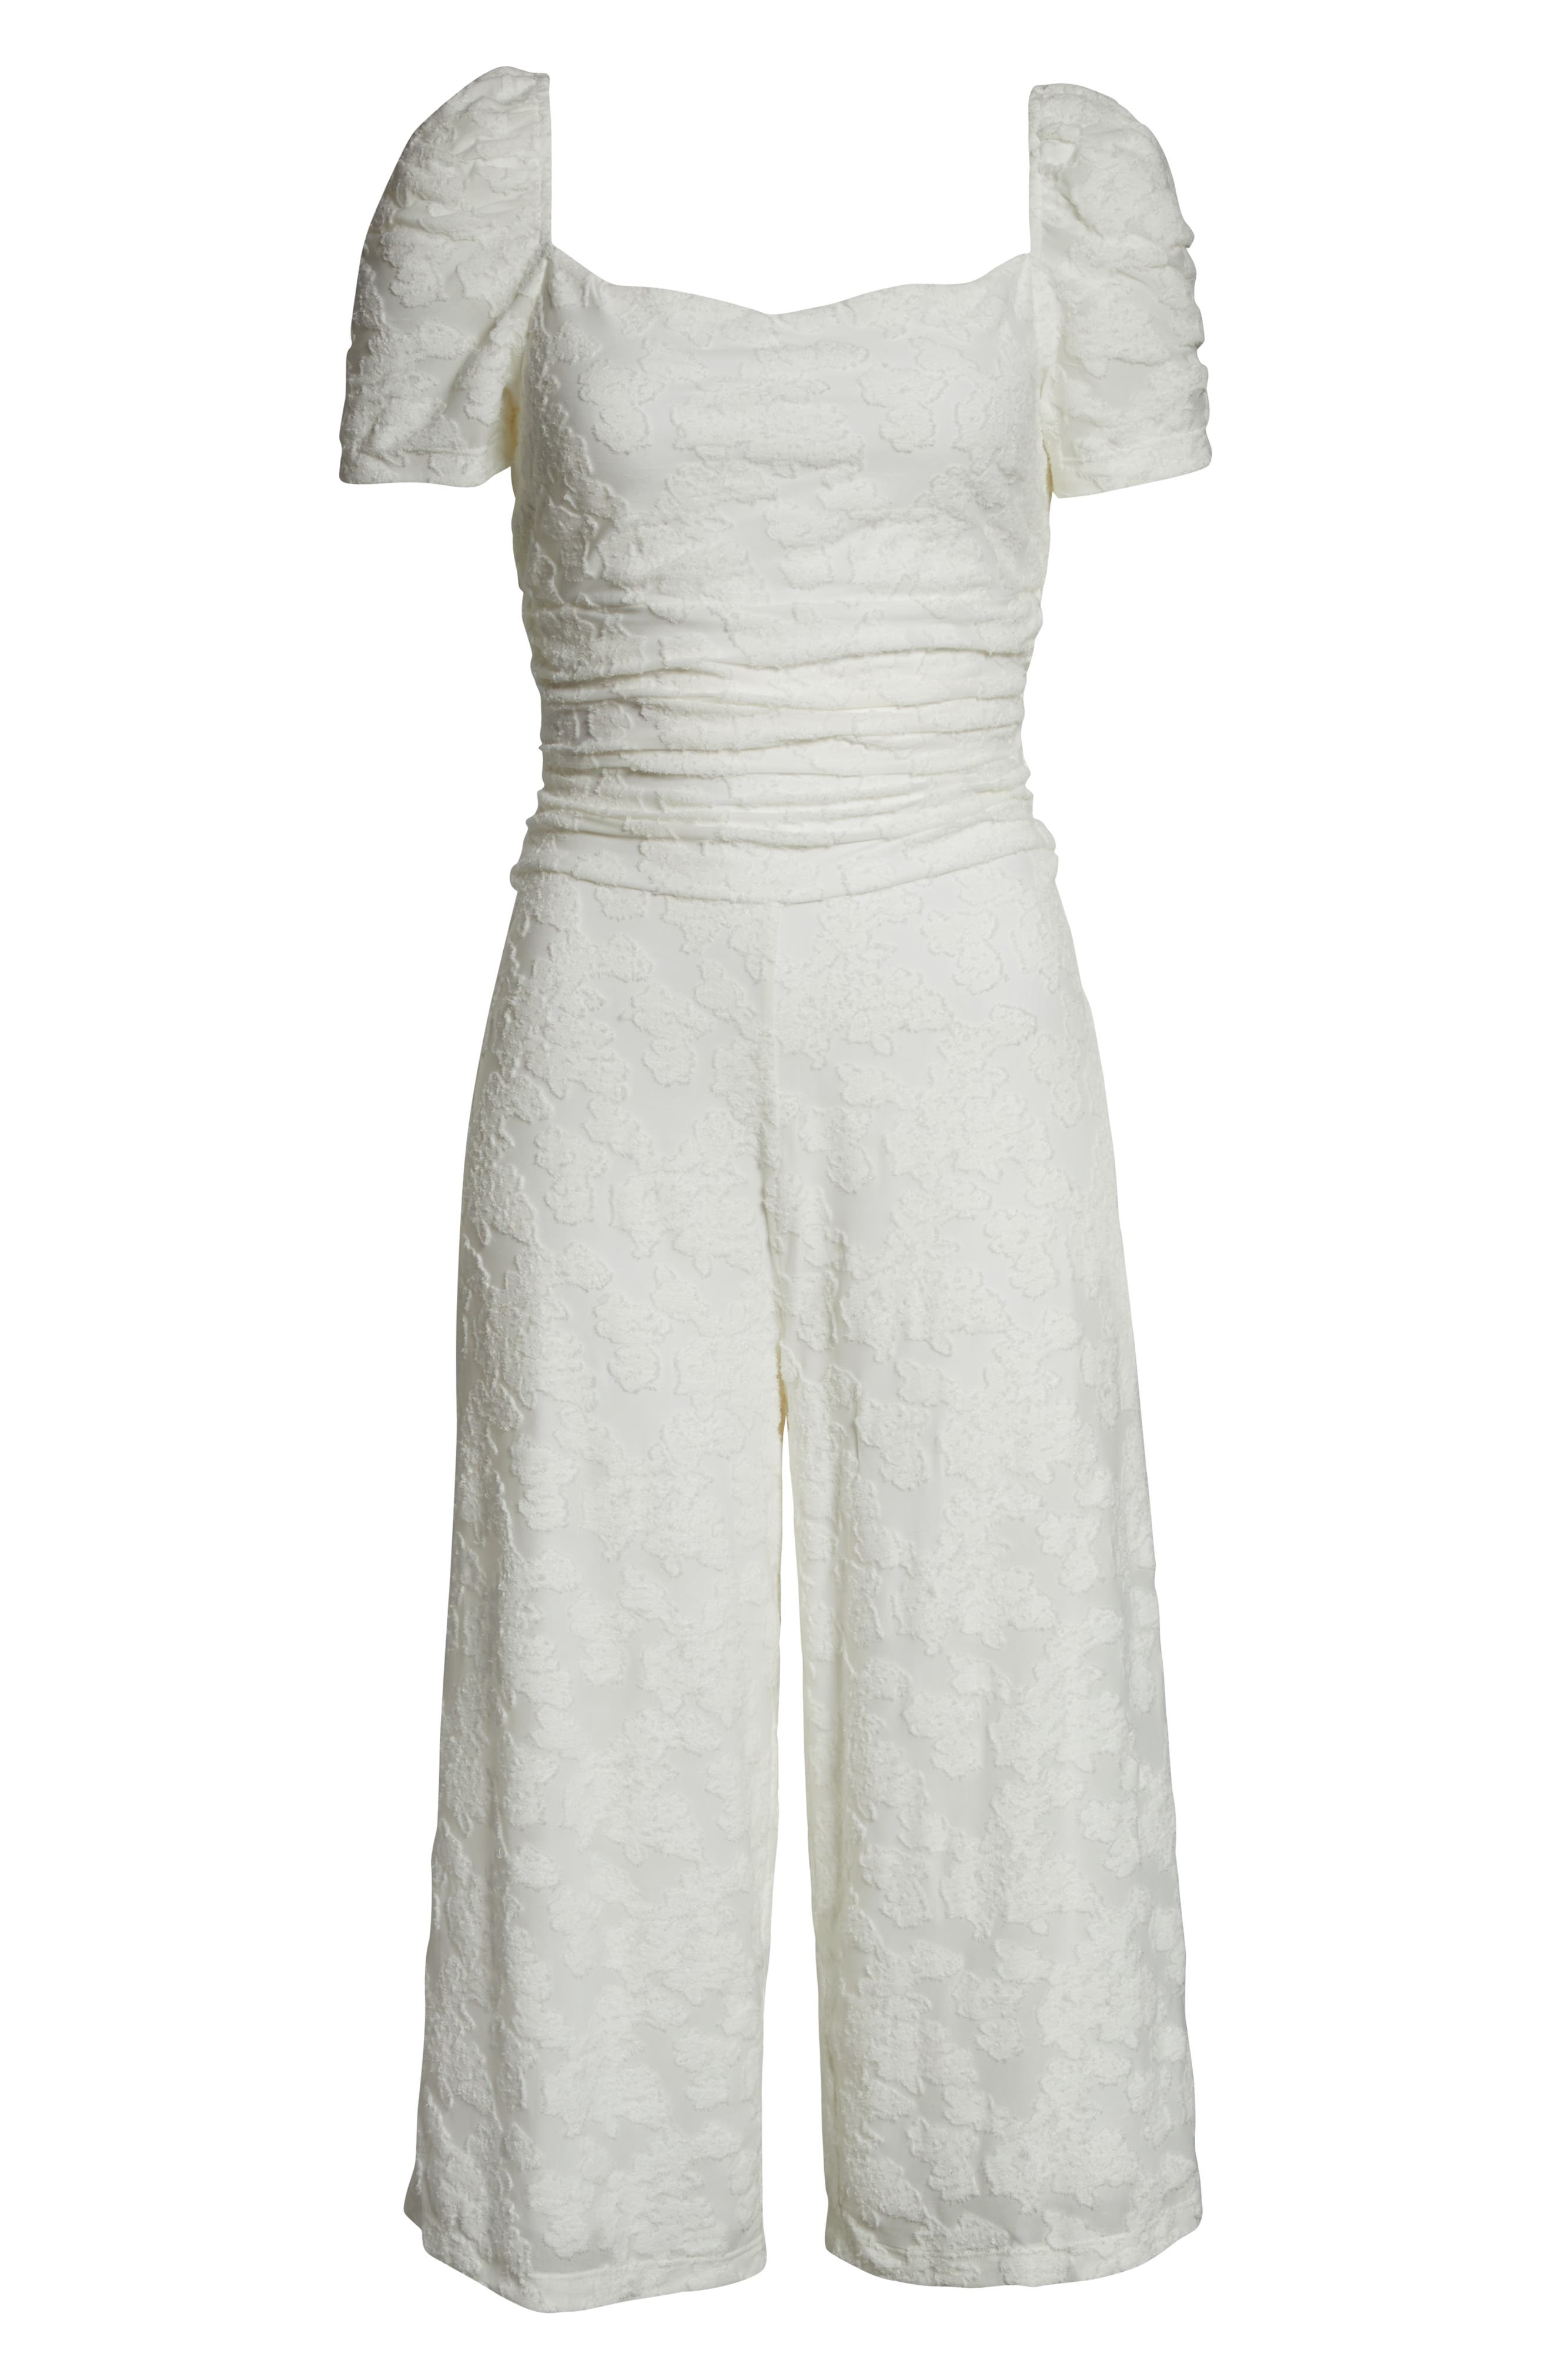 ALI & JAY, Lunching Lady Crop Jumpsuit, Alternate thumbnail 7, color, WHITE FLORAL